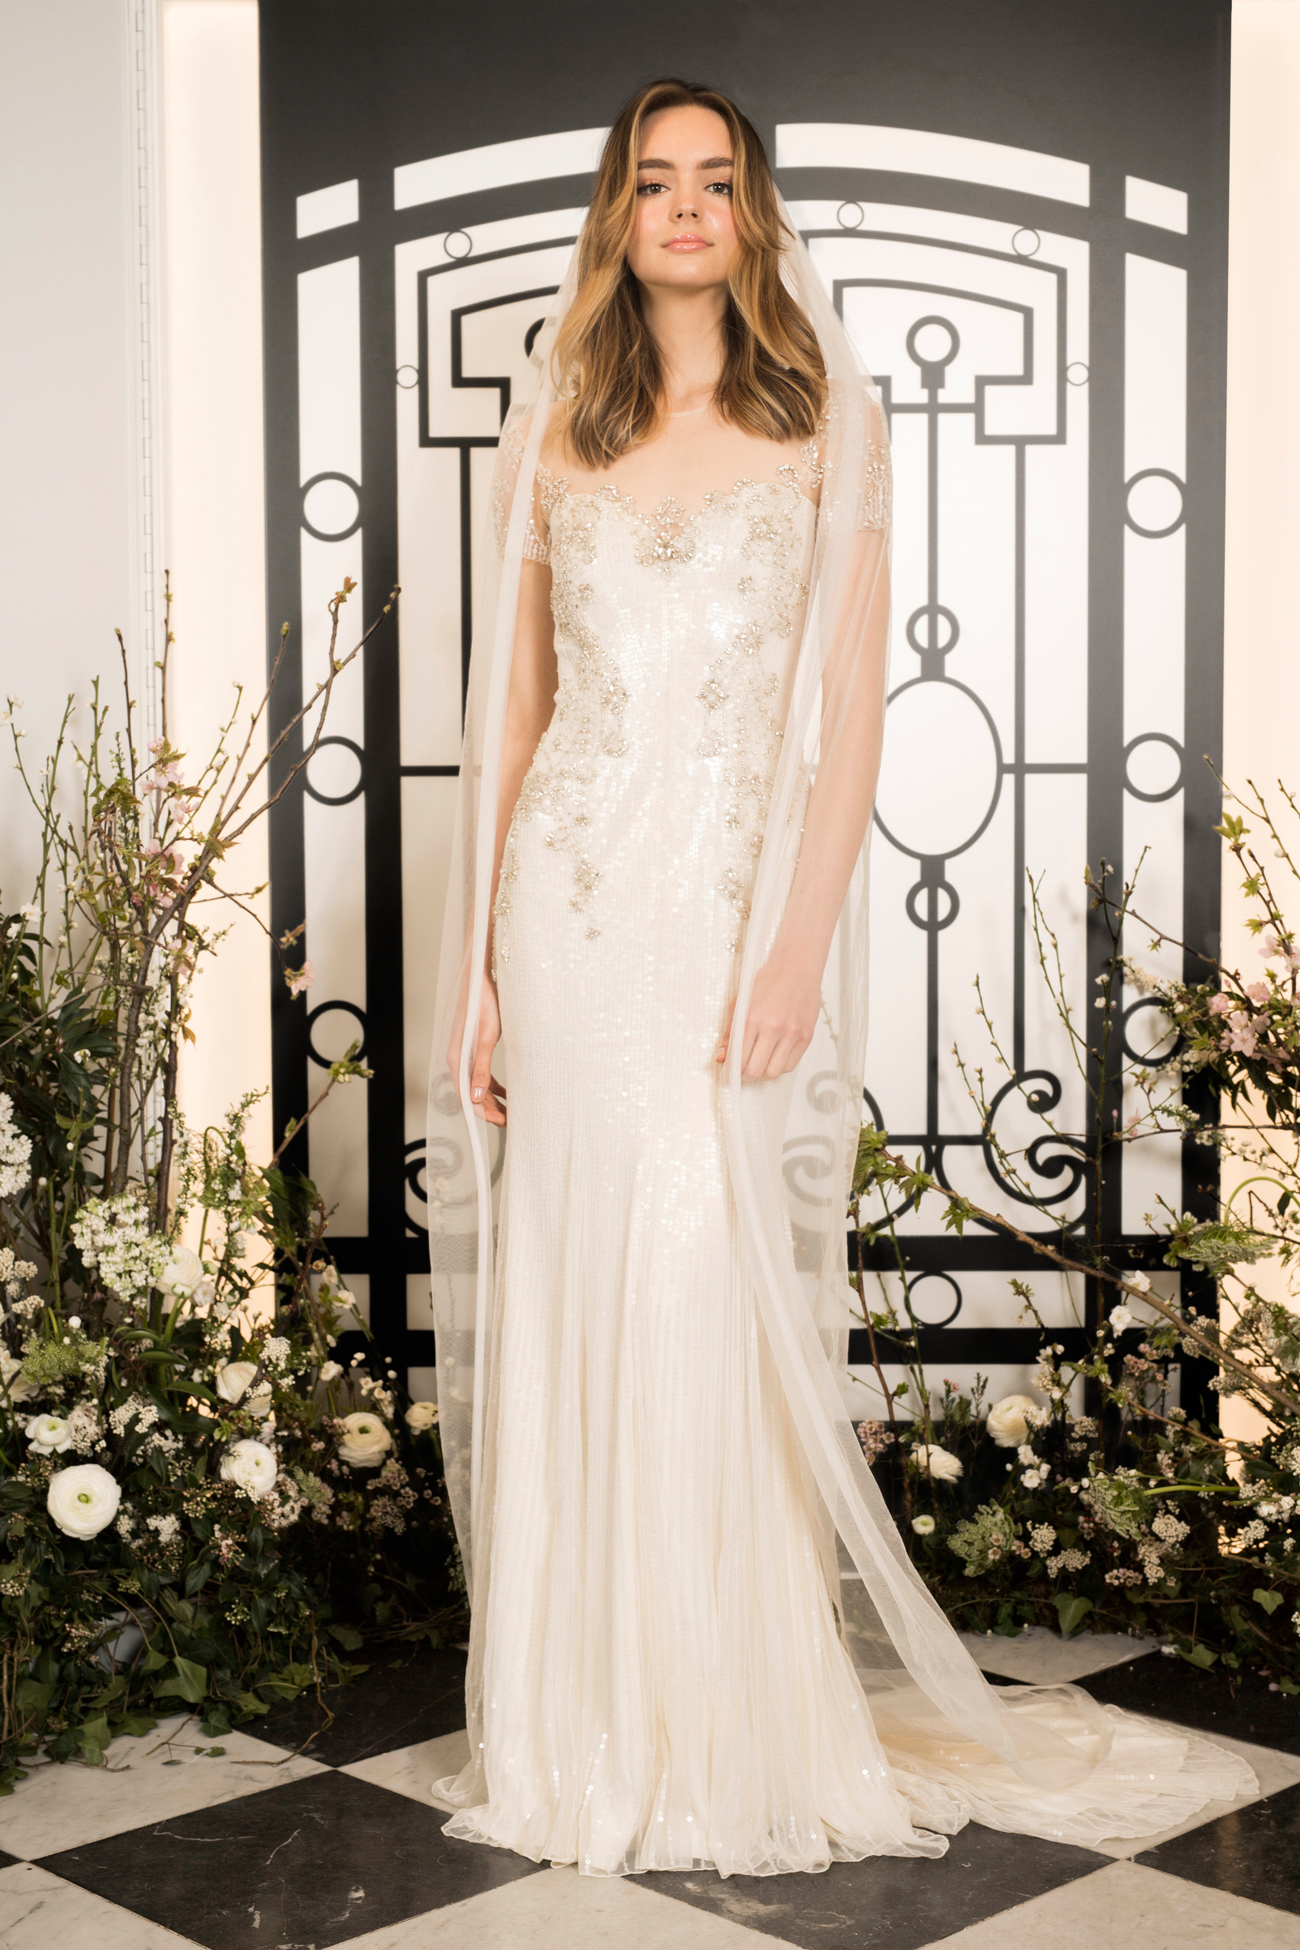 Jenny Packham Spring 2020 Wedding Dress Collection